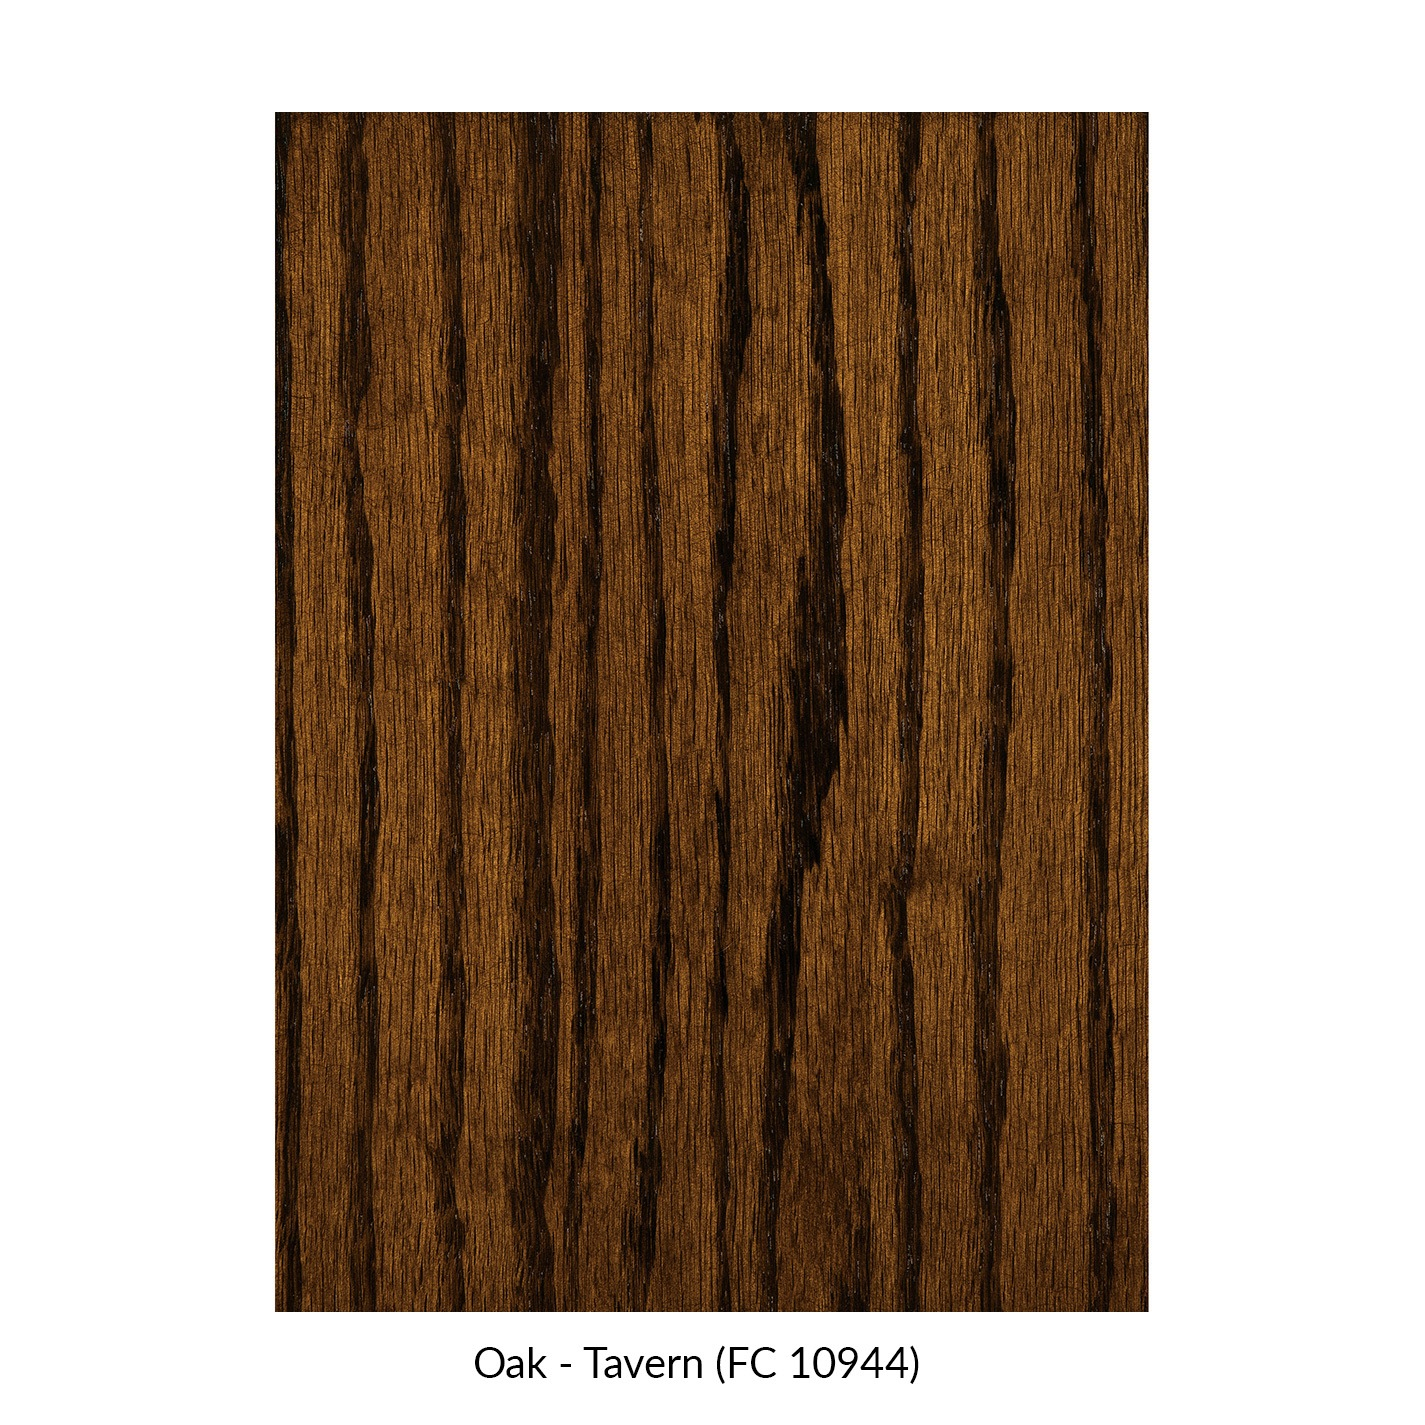 spectrum-oak-tavern-fc-10944.jpg